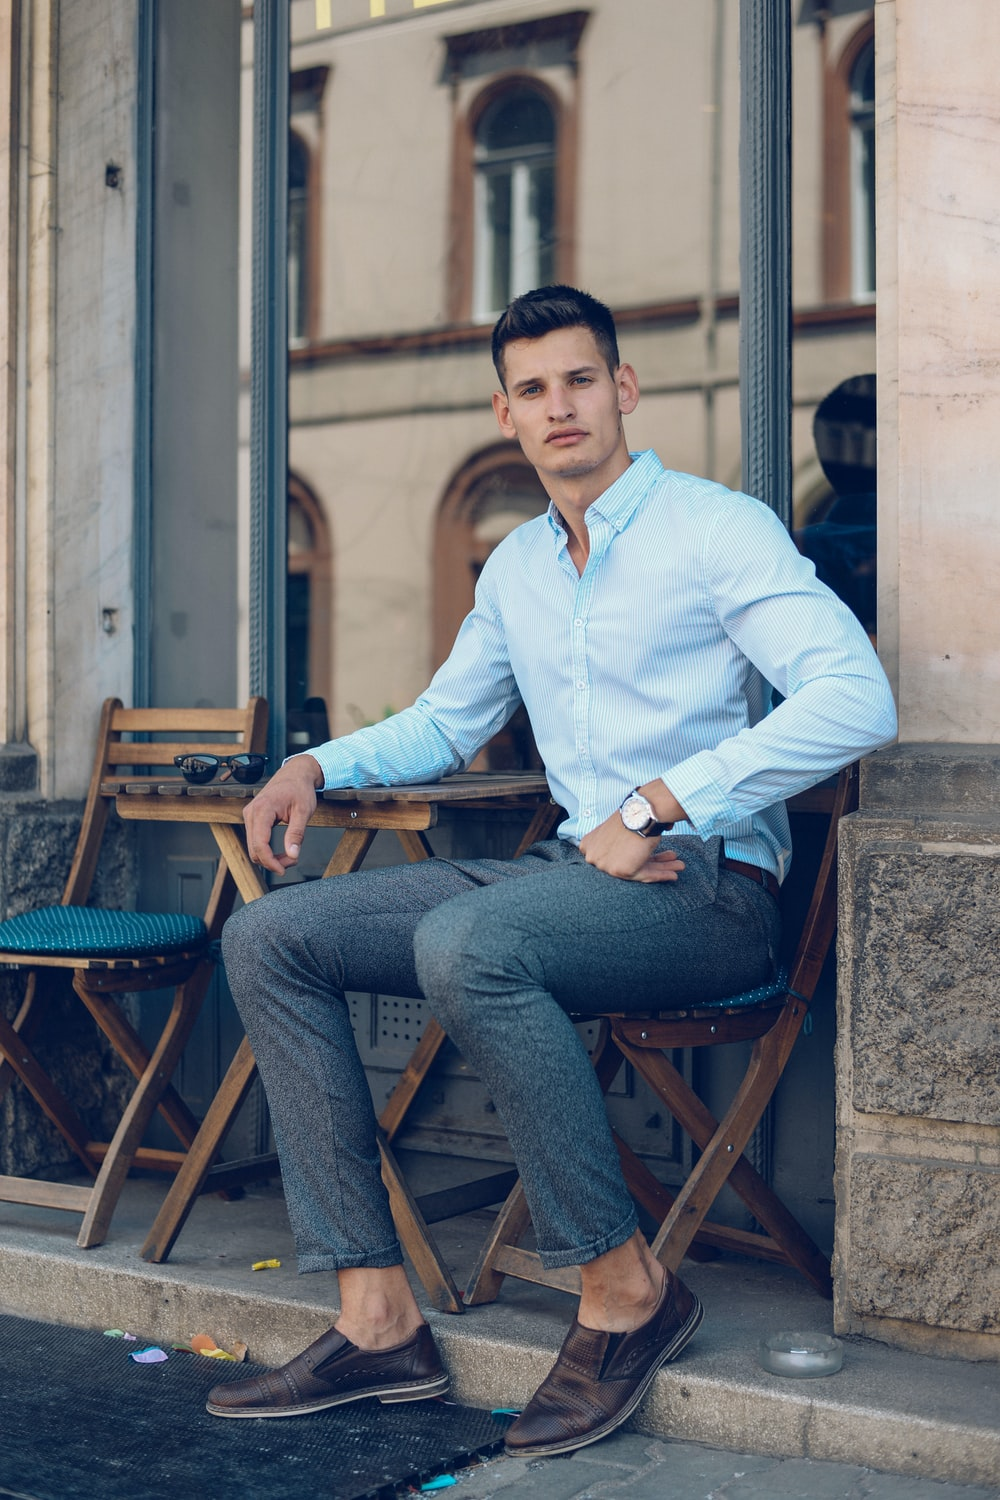 Fashion Trend: Outstanding Fashion Trend For Men You Need To Know